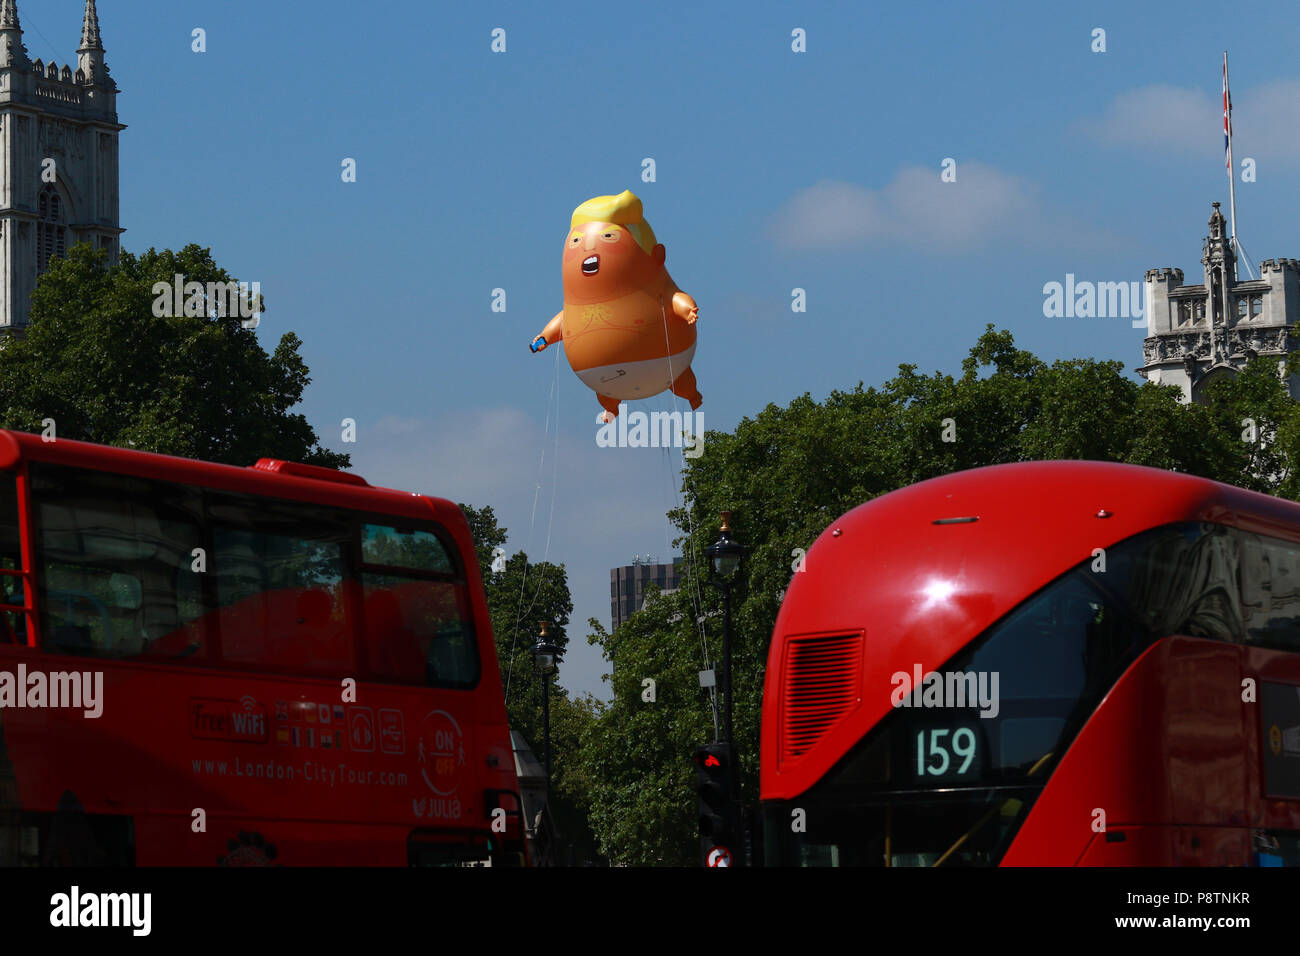 London, UK. 13th July, 2018. A Donald Trump baby blimp, mocking the American President, is flown above Westminster Square in London, as the President of the United States of America visits London, and has meetings with Prime Minister Theresa May and HM Queen Elizabeth II. Donald Trump baby blimp protest, London, on July 13, 2018. Credit: Paul Marriott/Alamy Live News Stock Photo